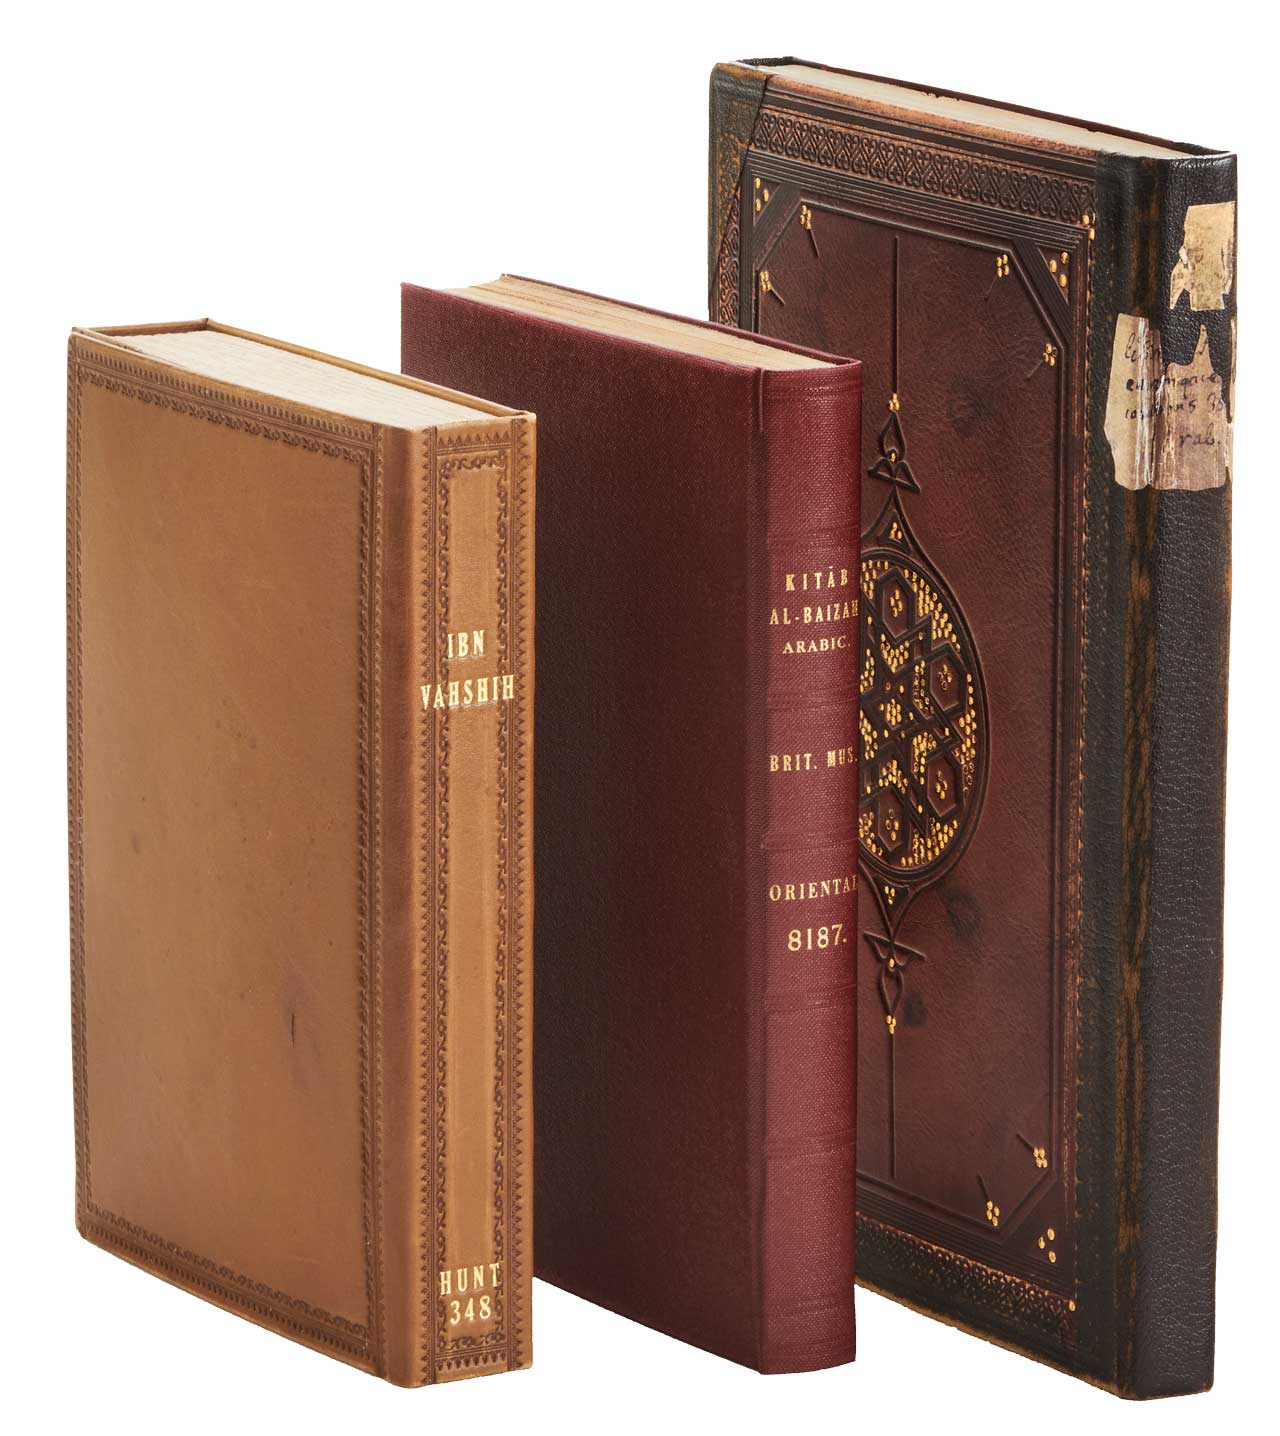 """The facsimiles of the Bodleian Library's Hunt 348 and Marsh 148 and the British Library's Or 8187 (centre). Image of the facsimiles. <small><a href=""""https://www.facsimile-editions.com/copyright/"""">© Copyright 2021 Facsimile Editions Ltd</a></small>"""